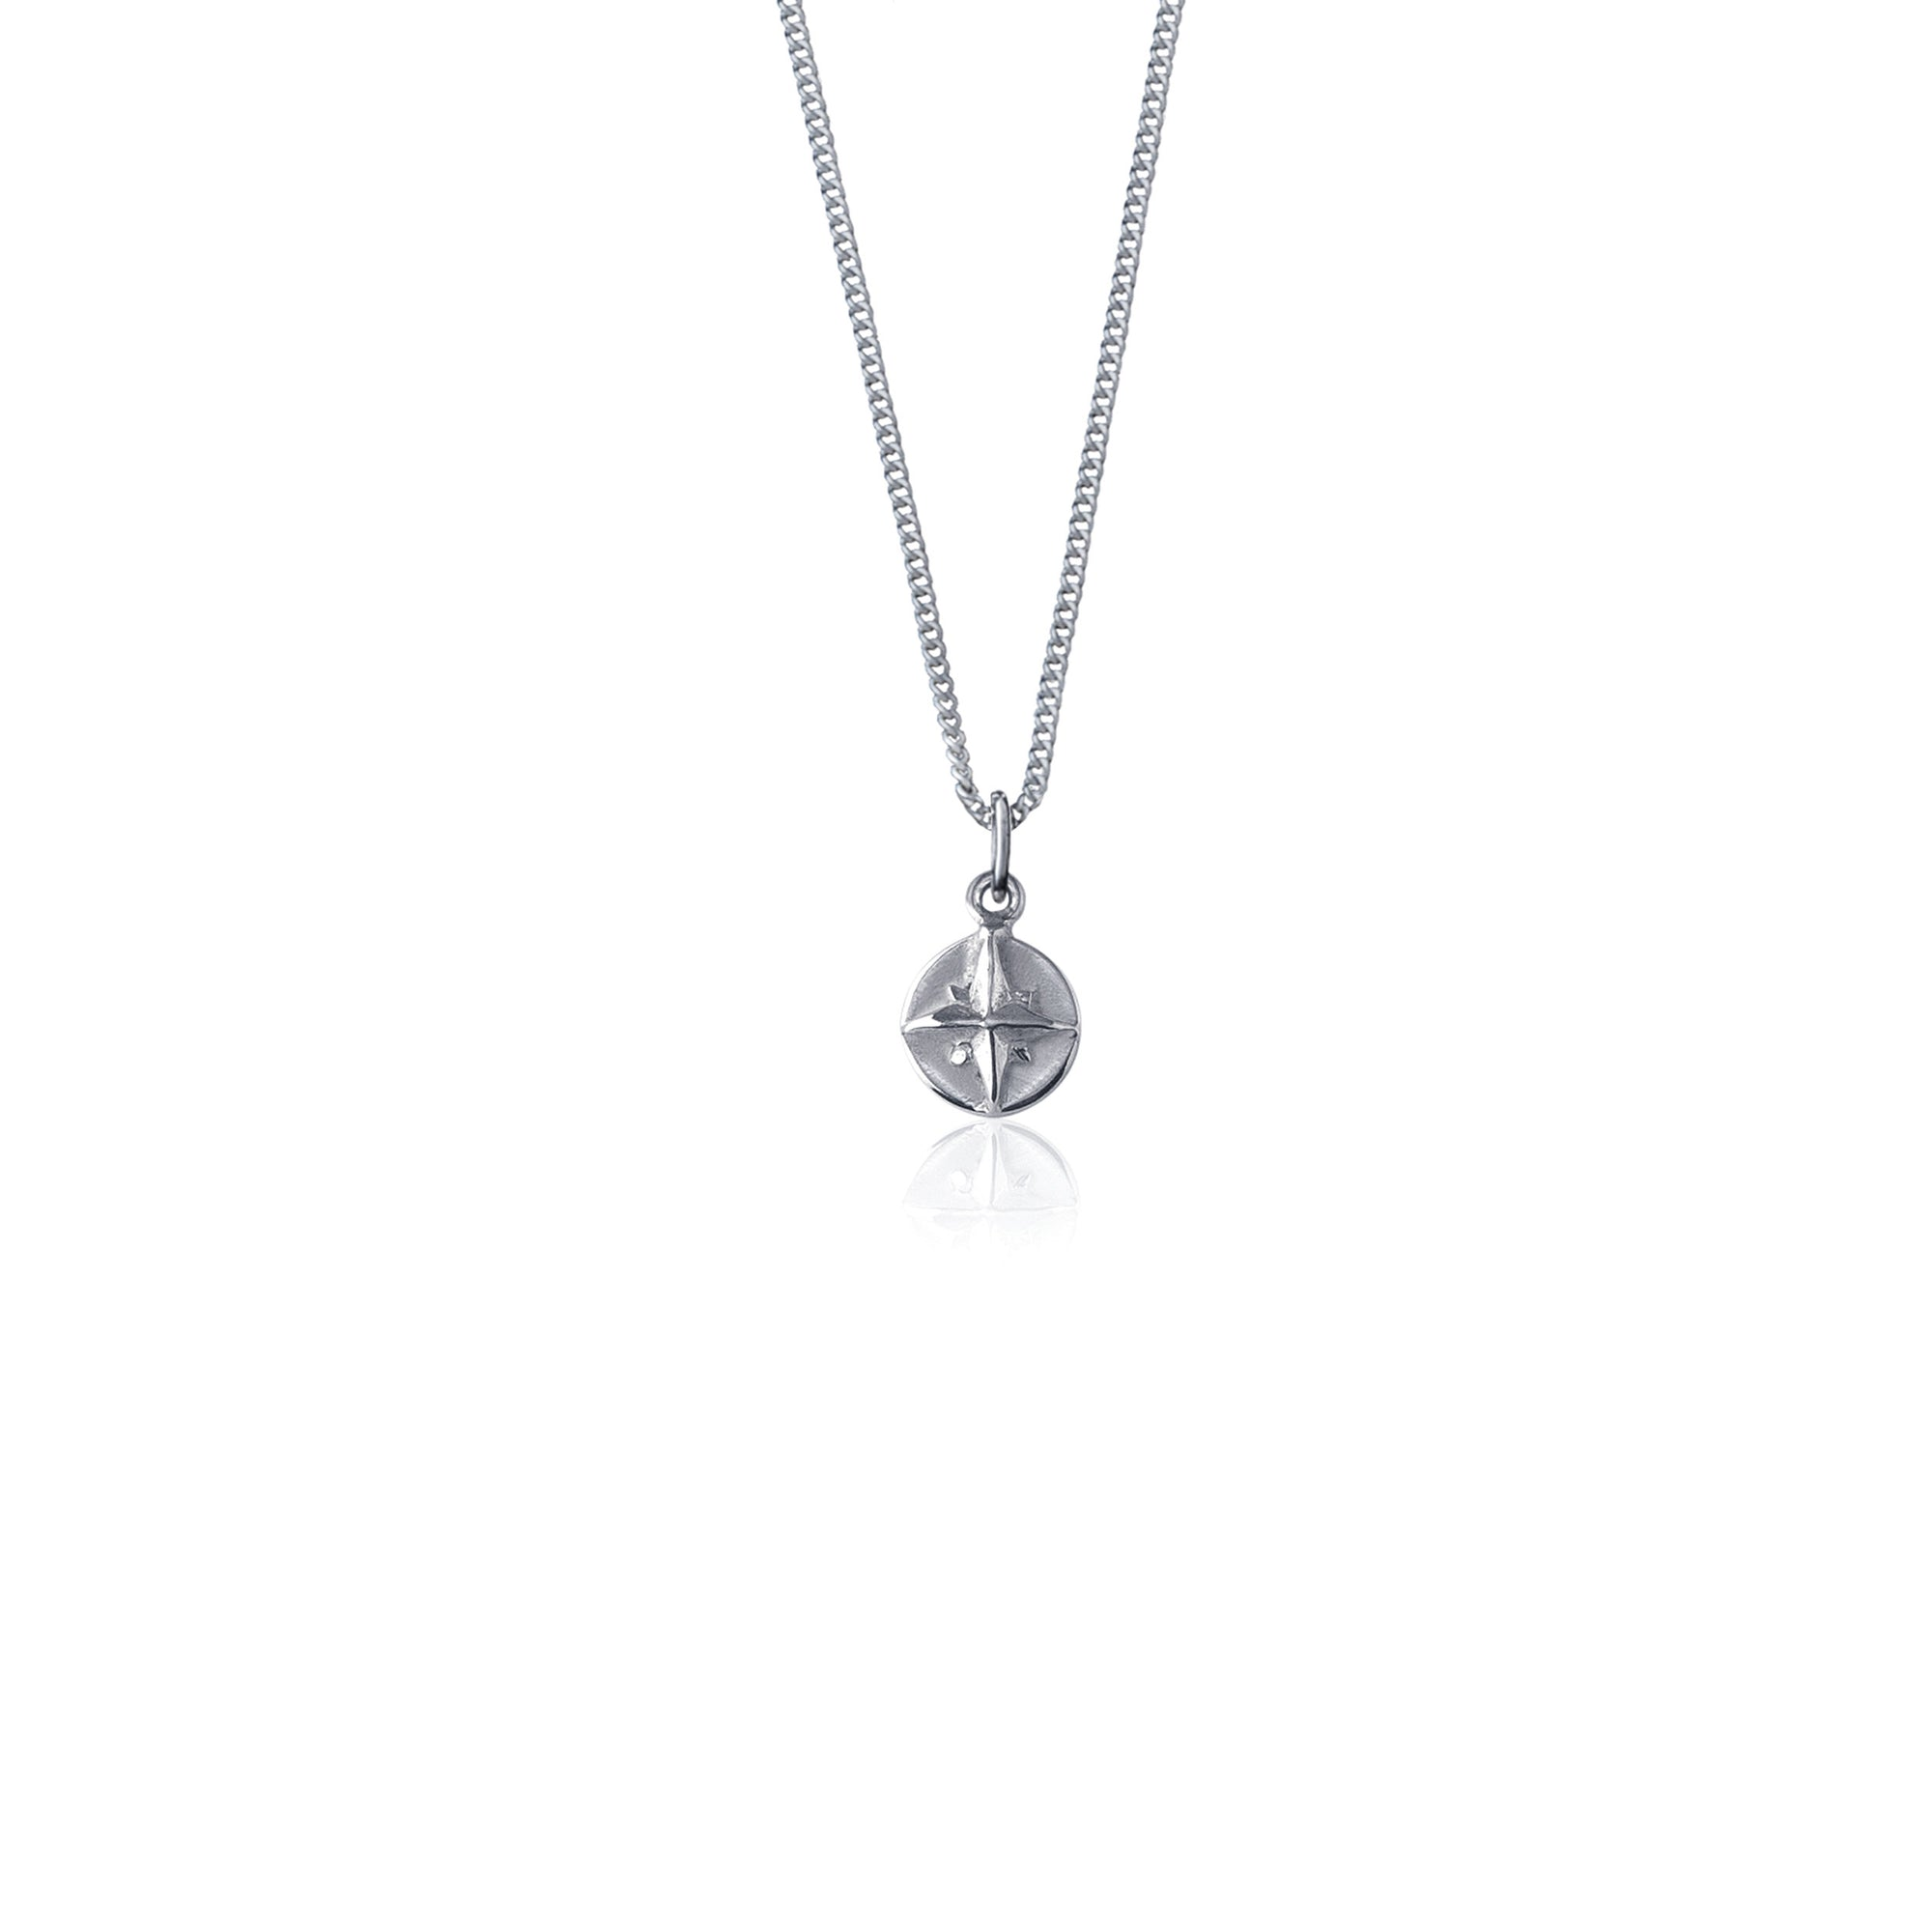 Born to Roam Necklace (Silver)